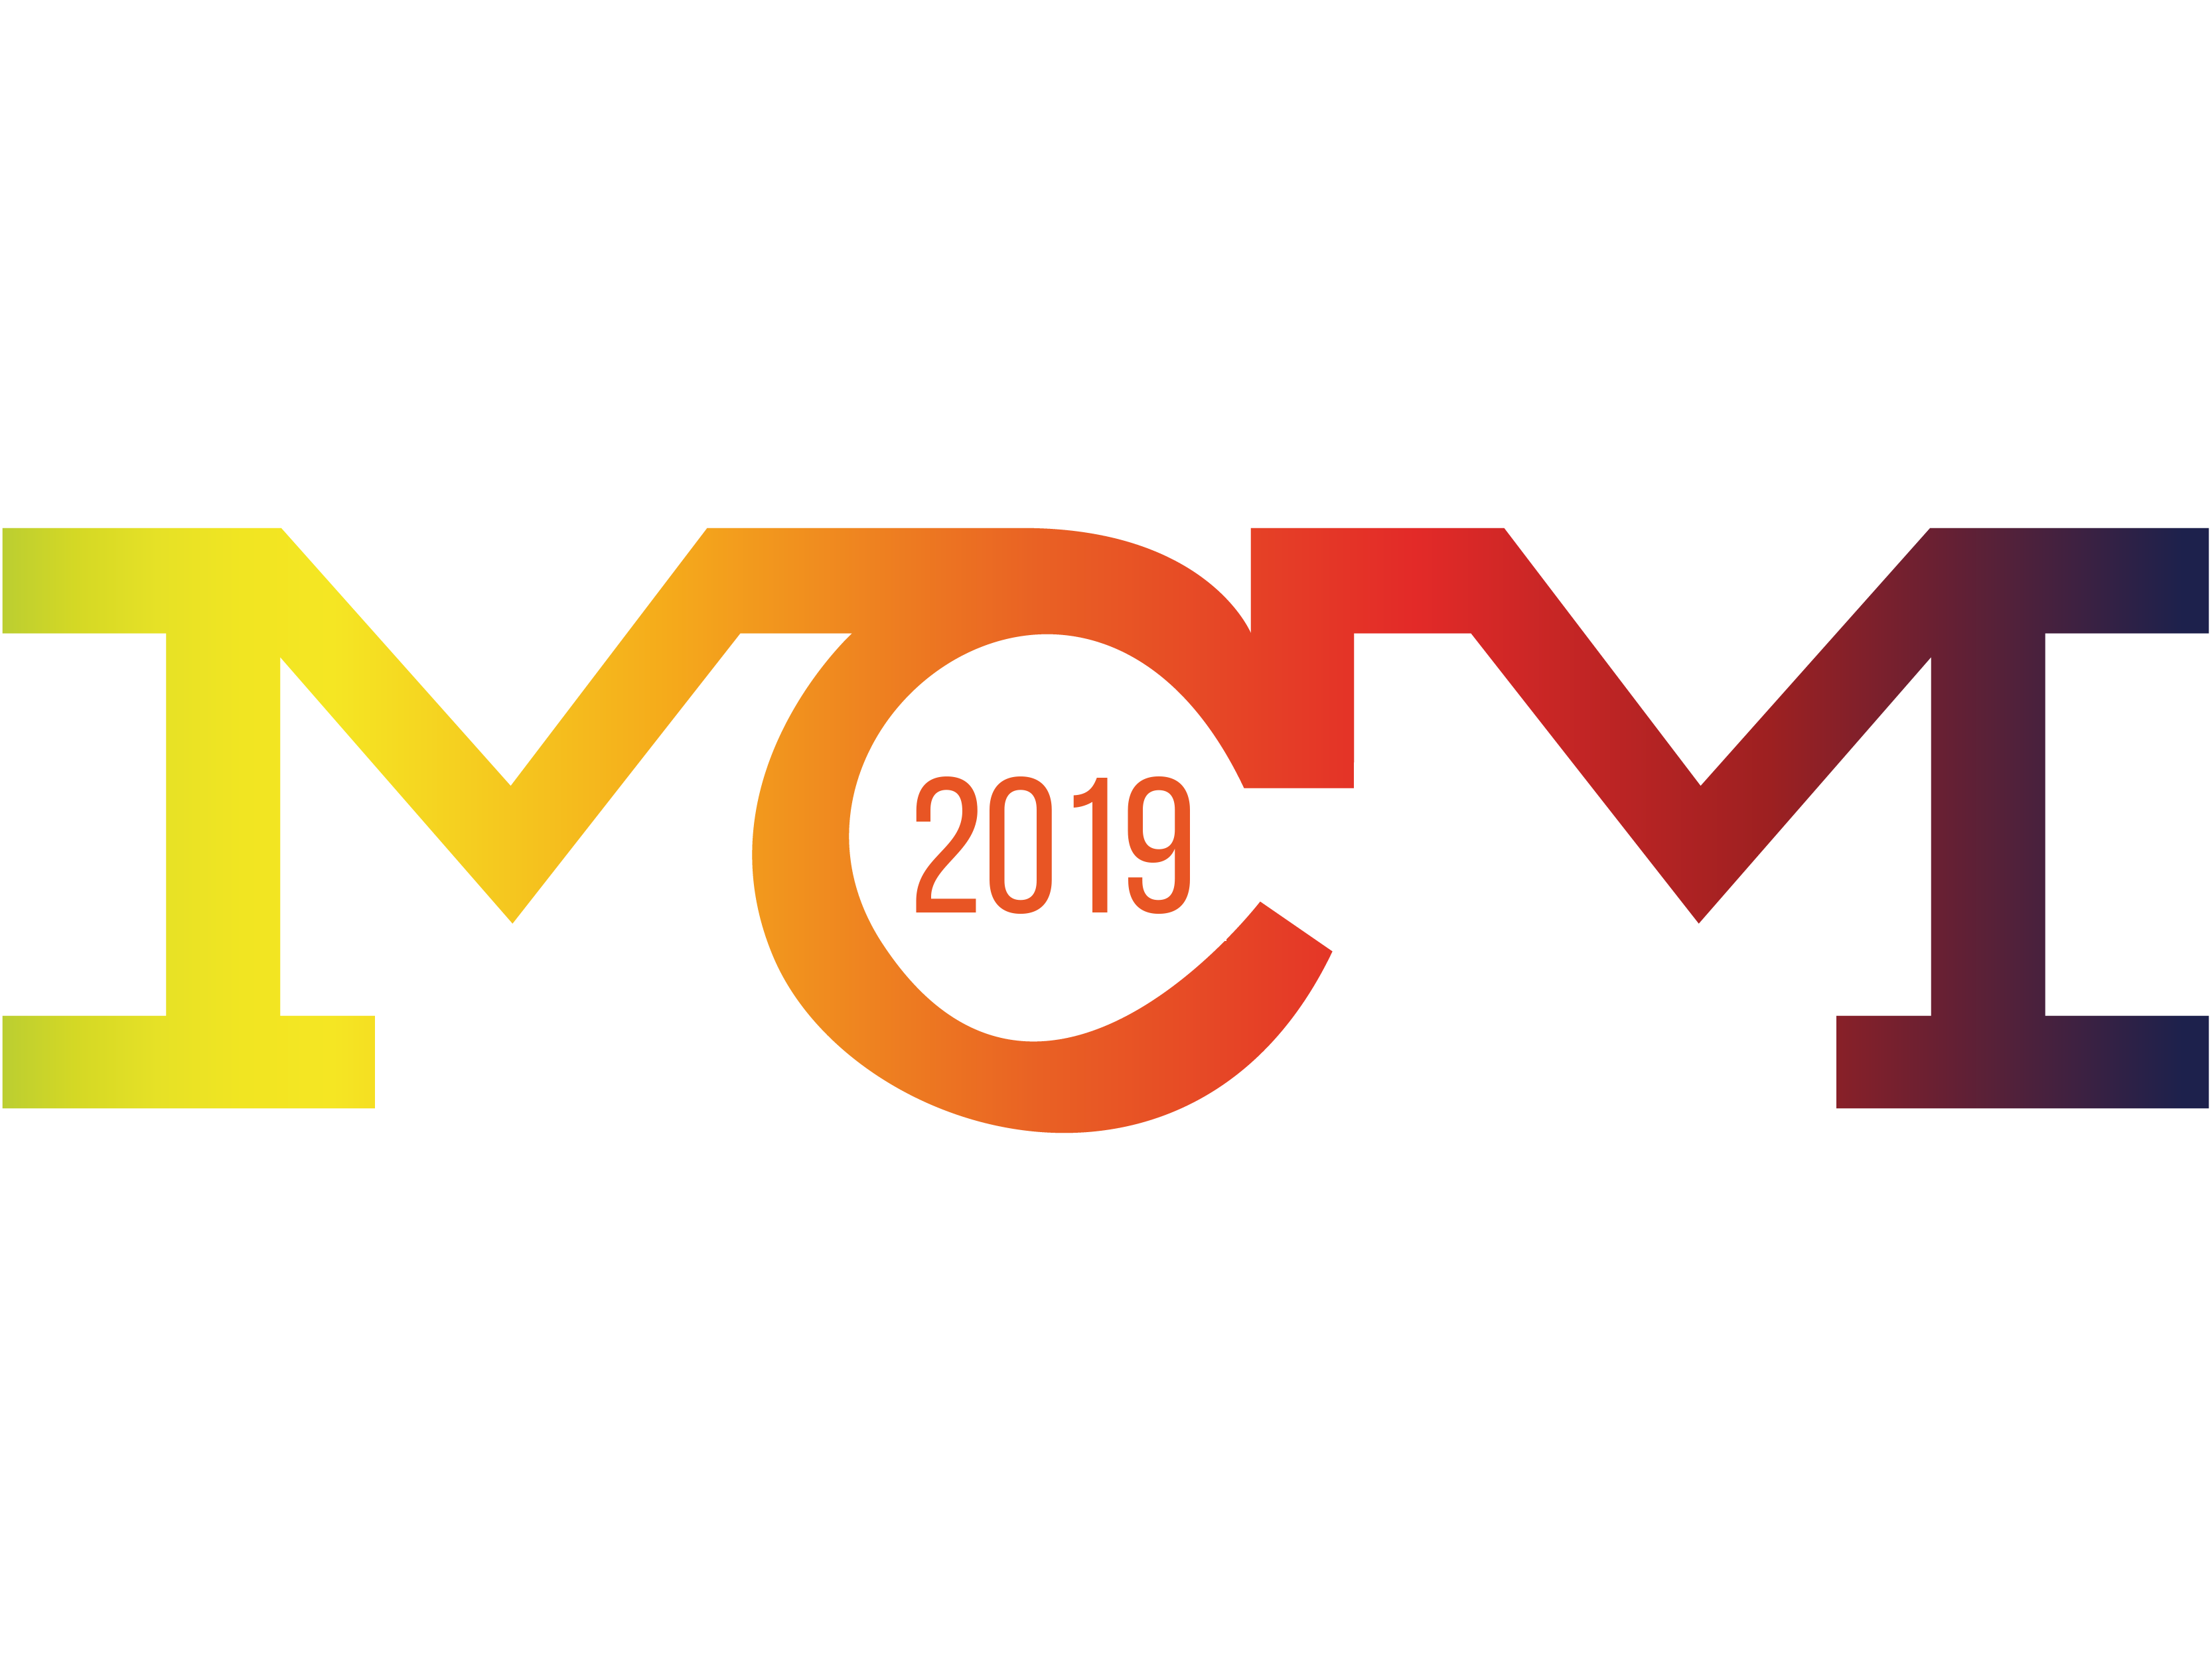 5th World Congress on Mechanical, Chemical, and Material Engineering (MCM'19)